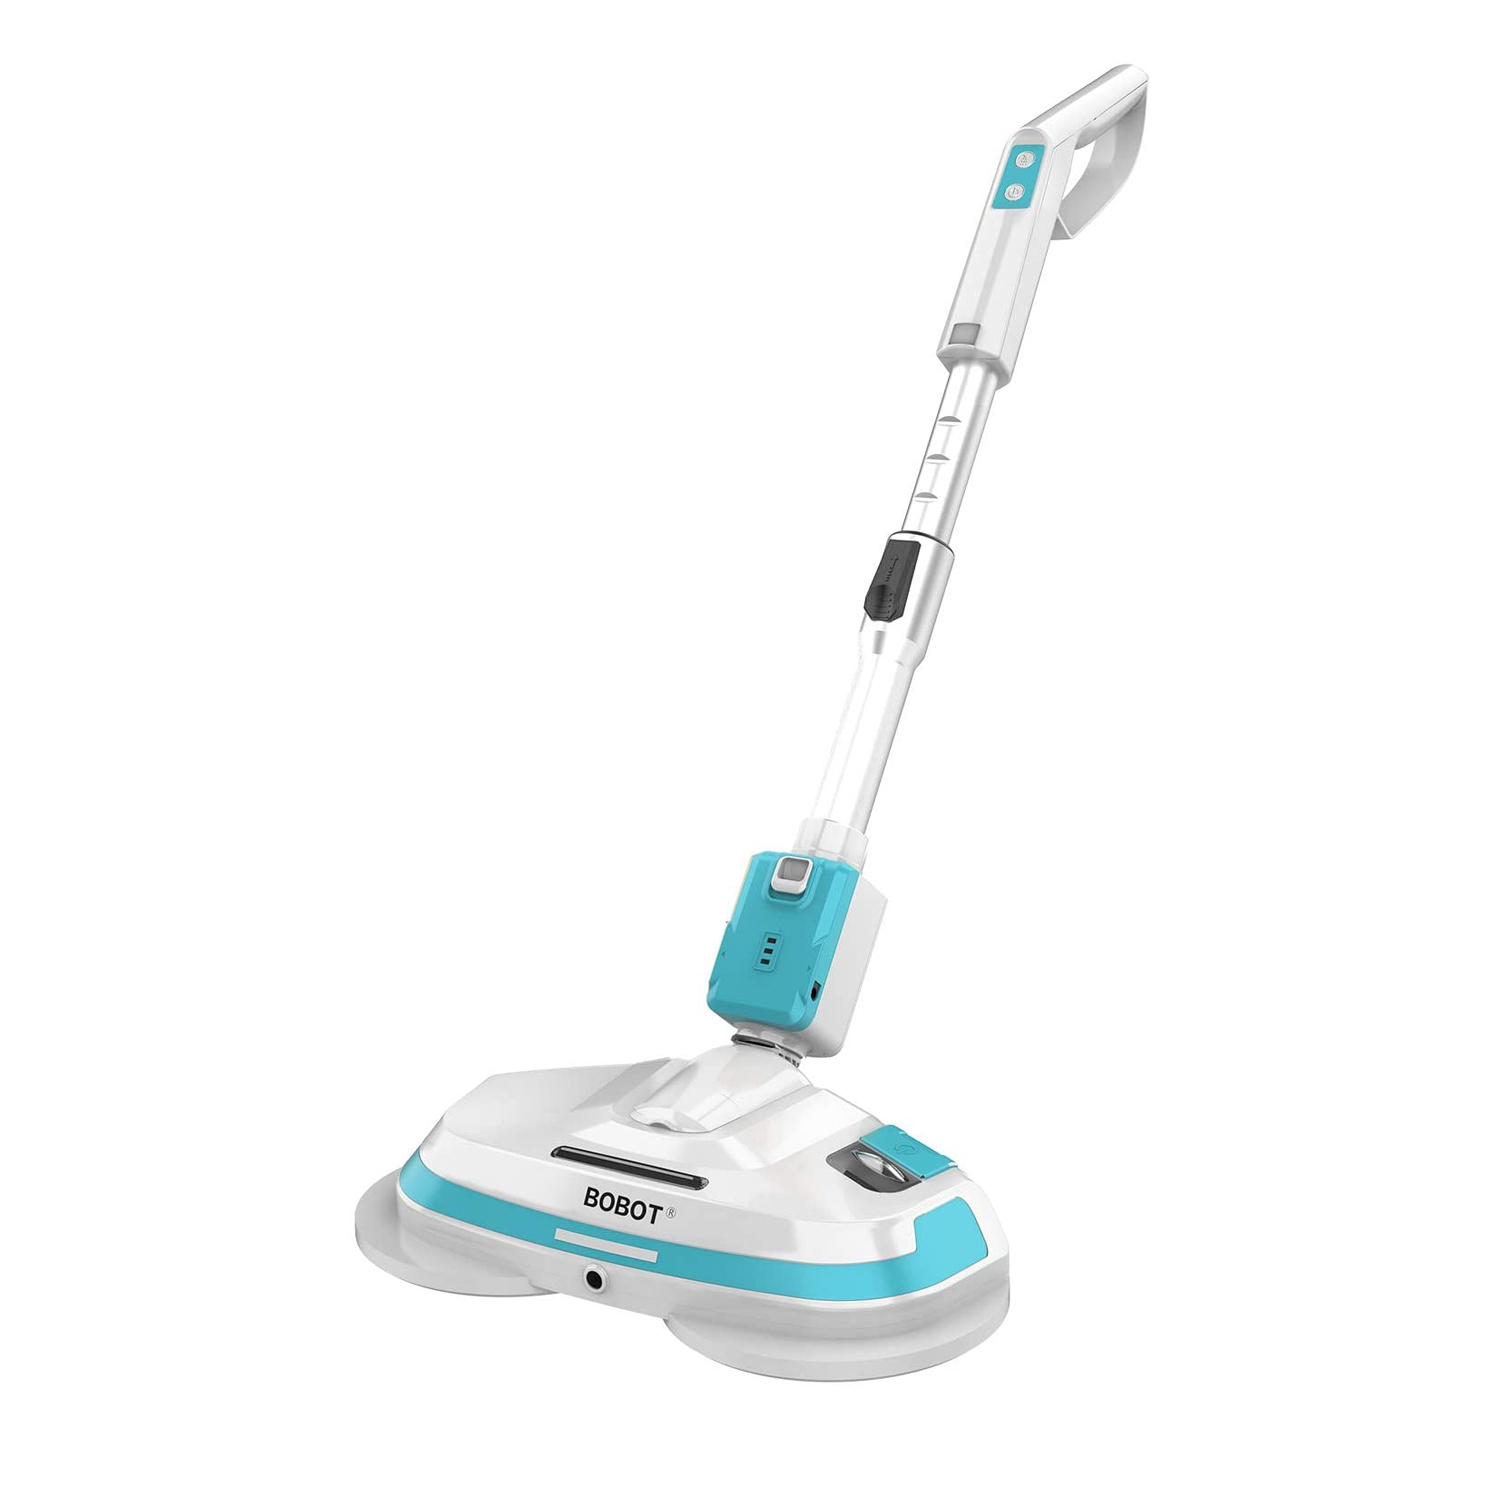 Bobot 8600S Cordless Electric Mop Sweeping and Waxing